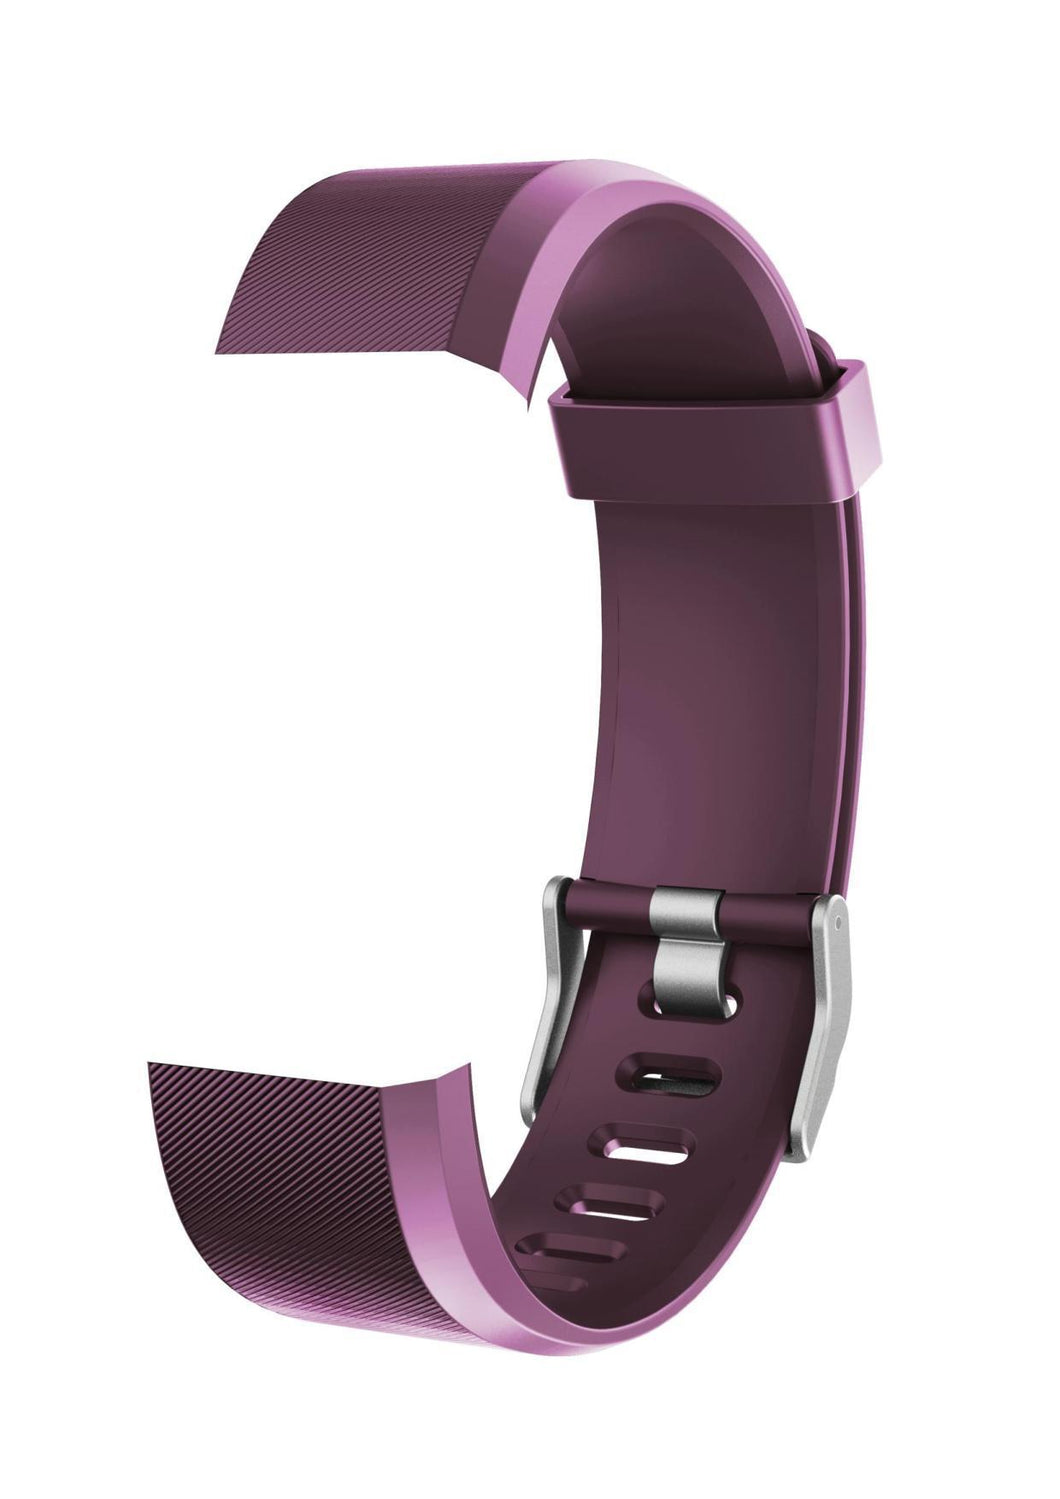 Tracker Max - Interchangeable Band - Purple band for CAC-110-M09 Bands Cactus Watches